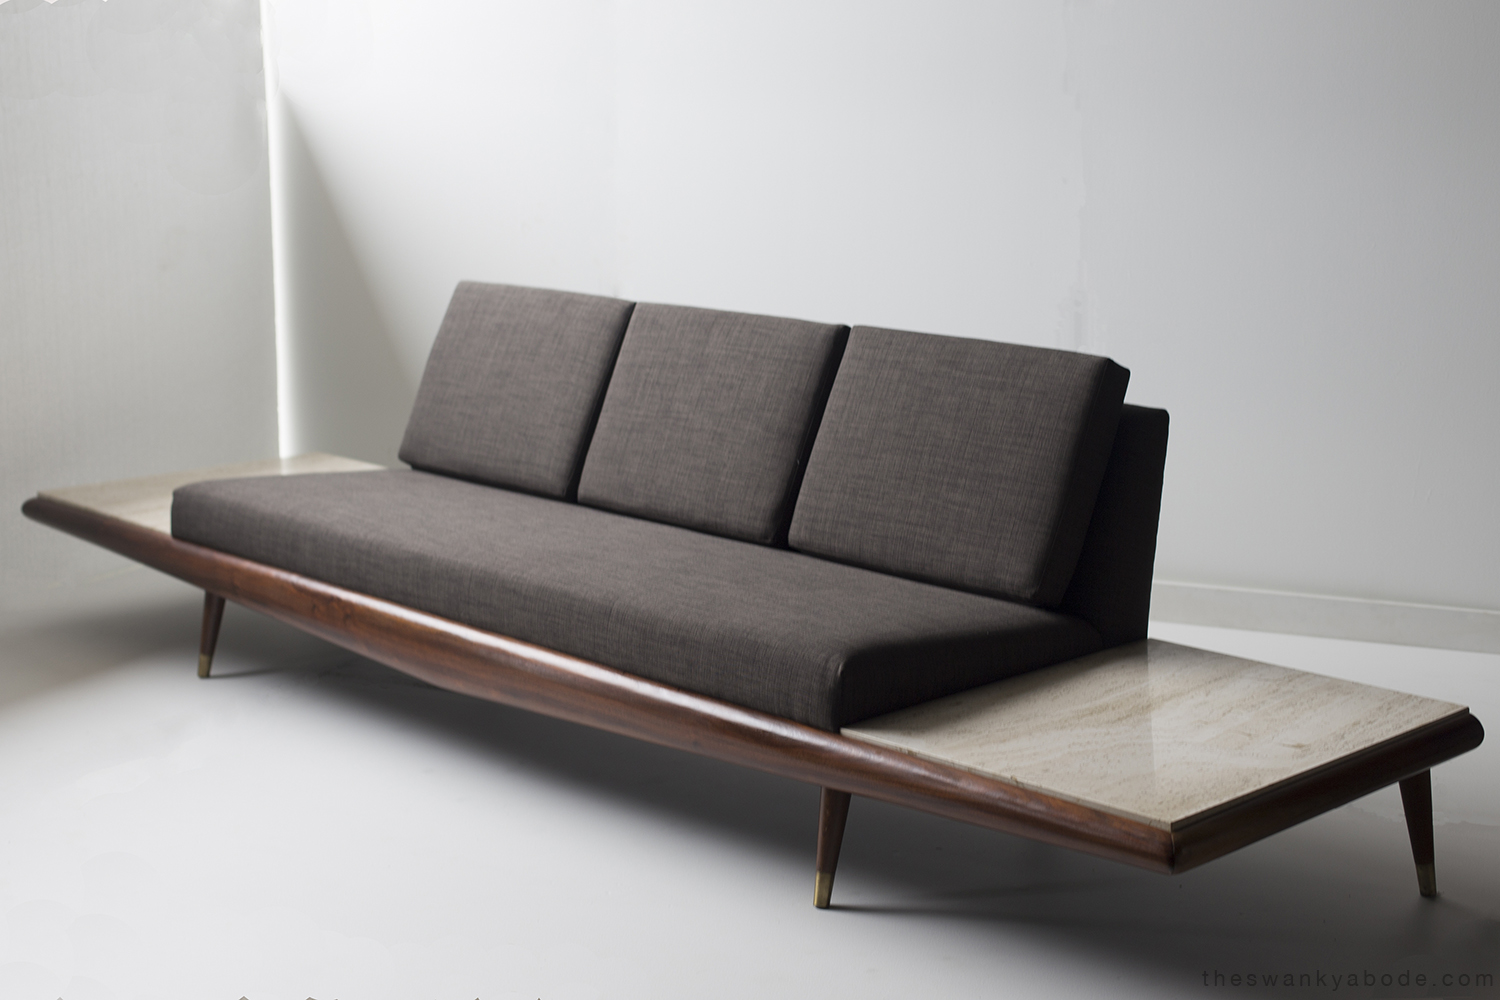 Adrian pearsall sofa for craft associates inc modernism - Modernist sofa ...